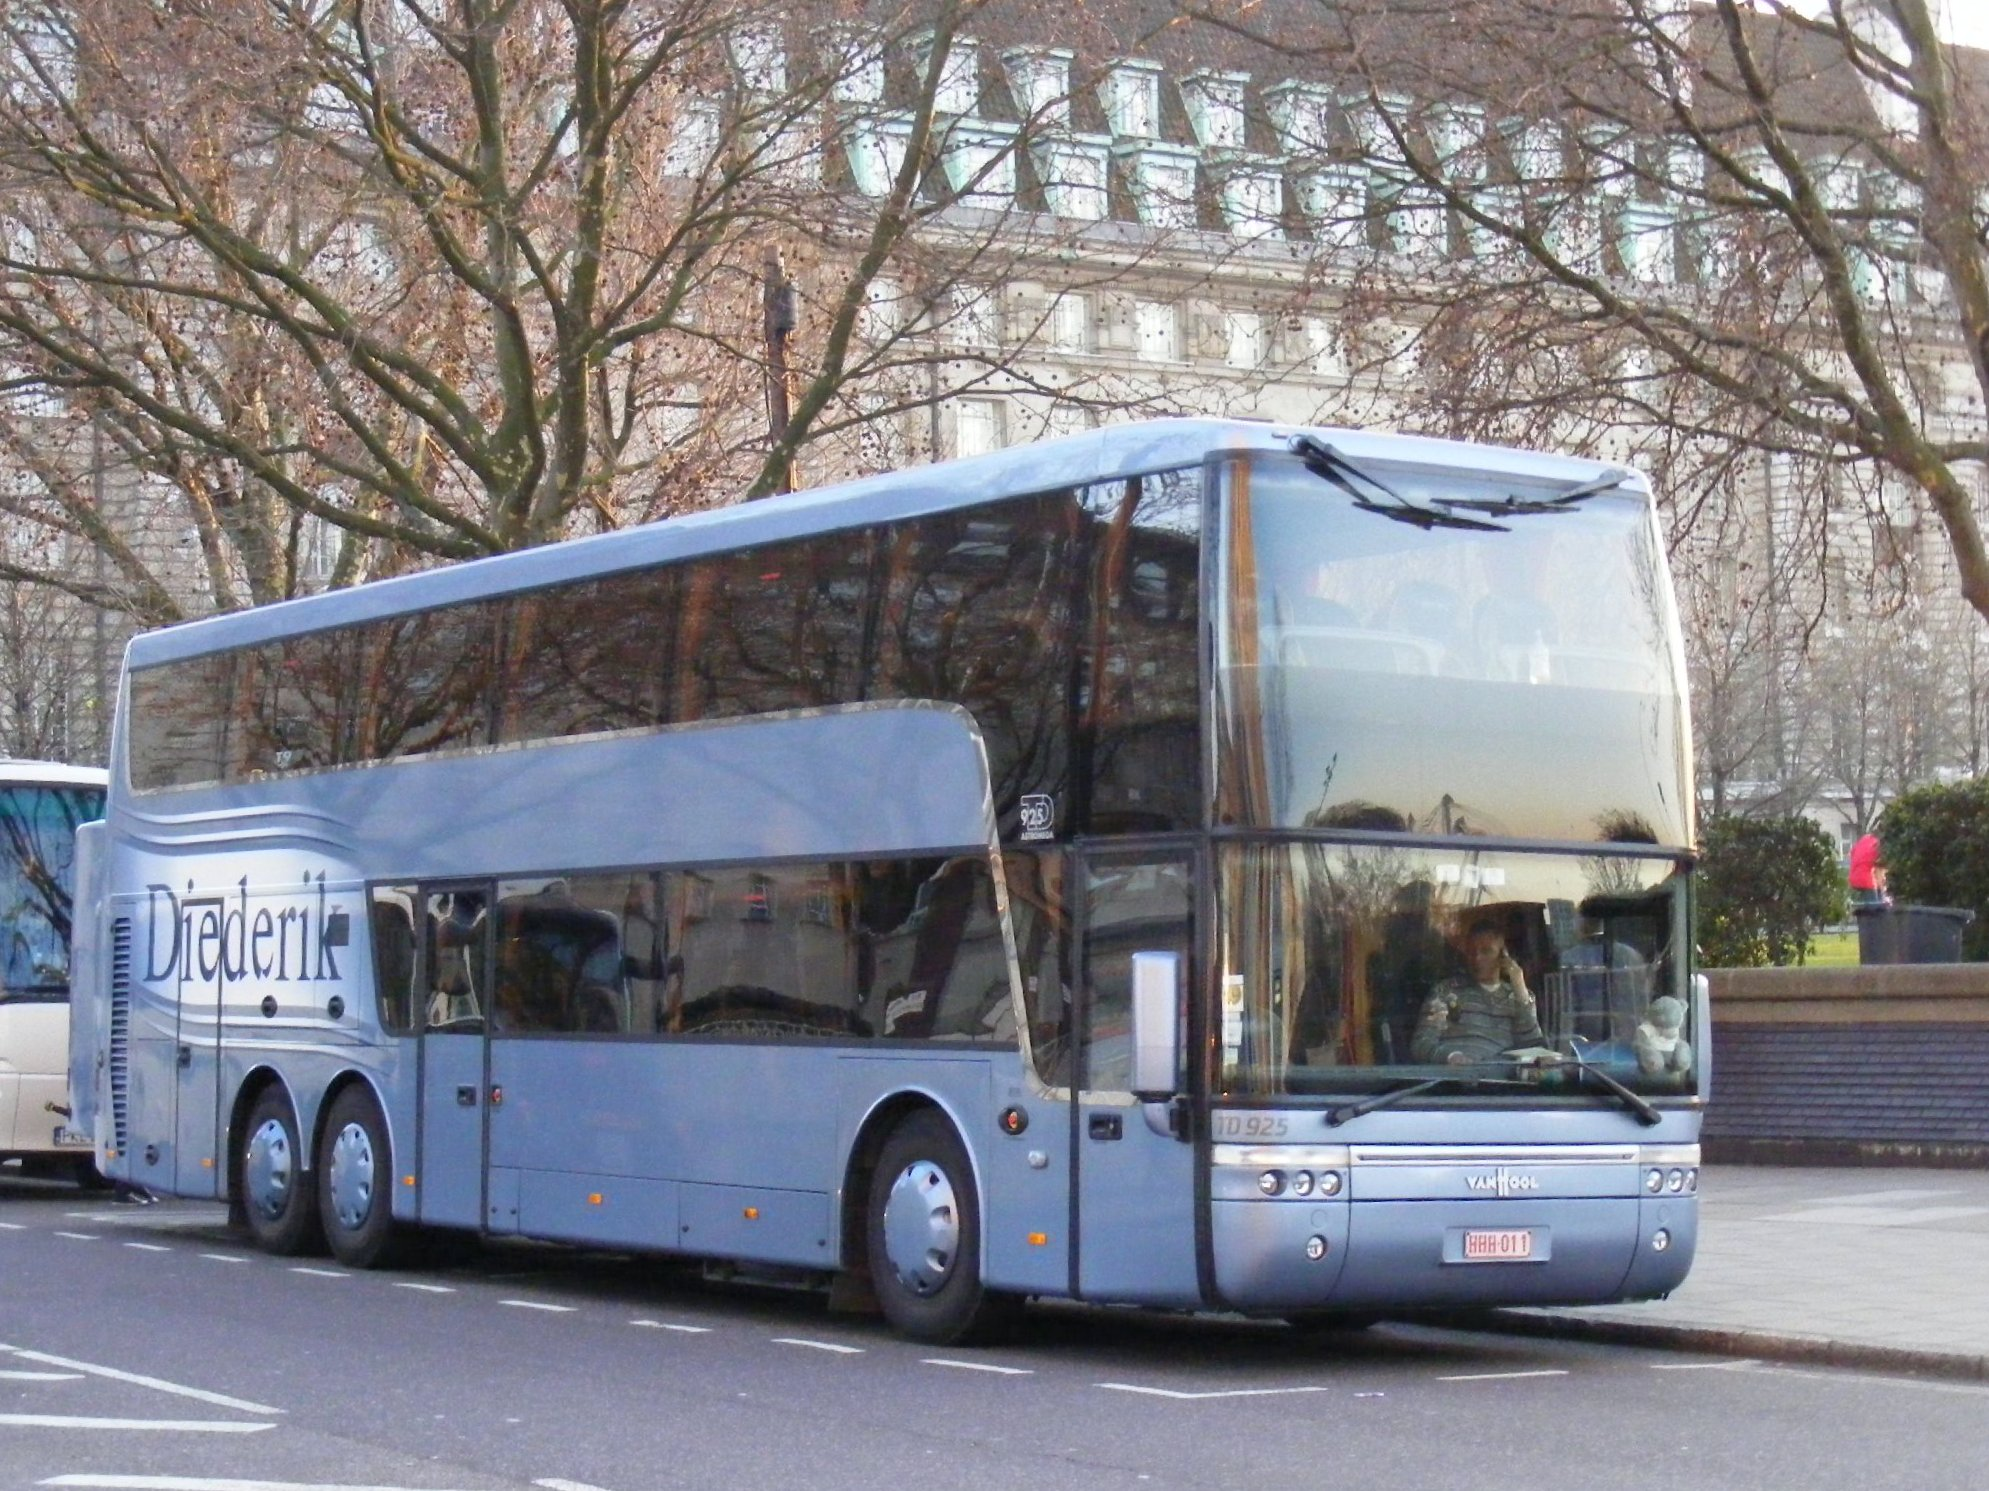 medium resolution of bus van hool c2045 wiring diagrams official site wiring diagramsvan hool c2045 wiring diagrams 2002